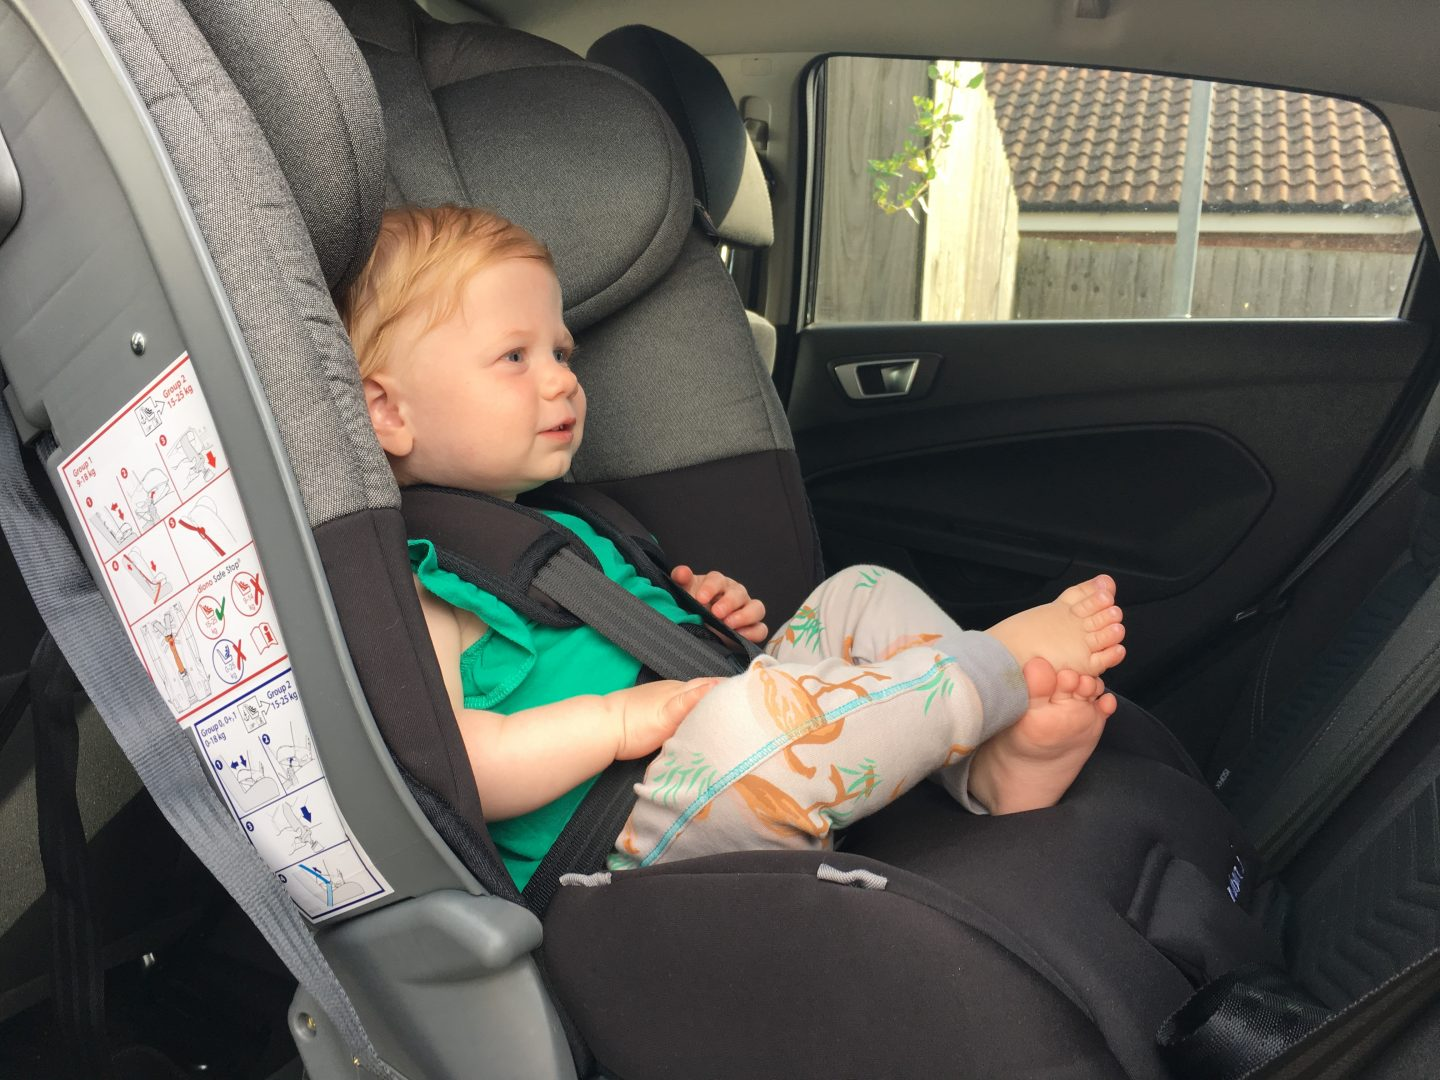 Diono Radian 5 car seat in Ford Fiesta, Diono Radian 5 review, extended rear facing car seat review